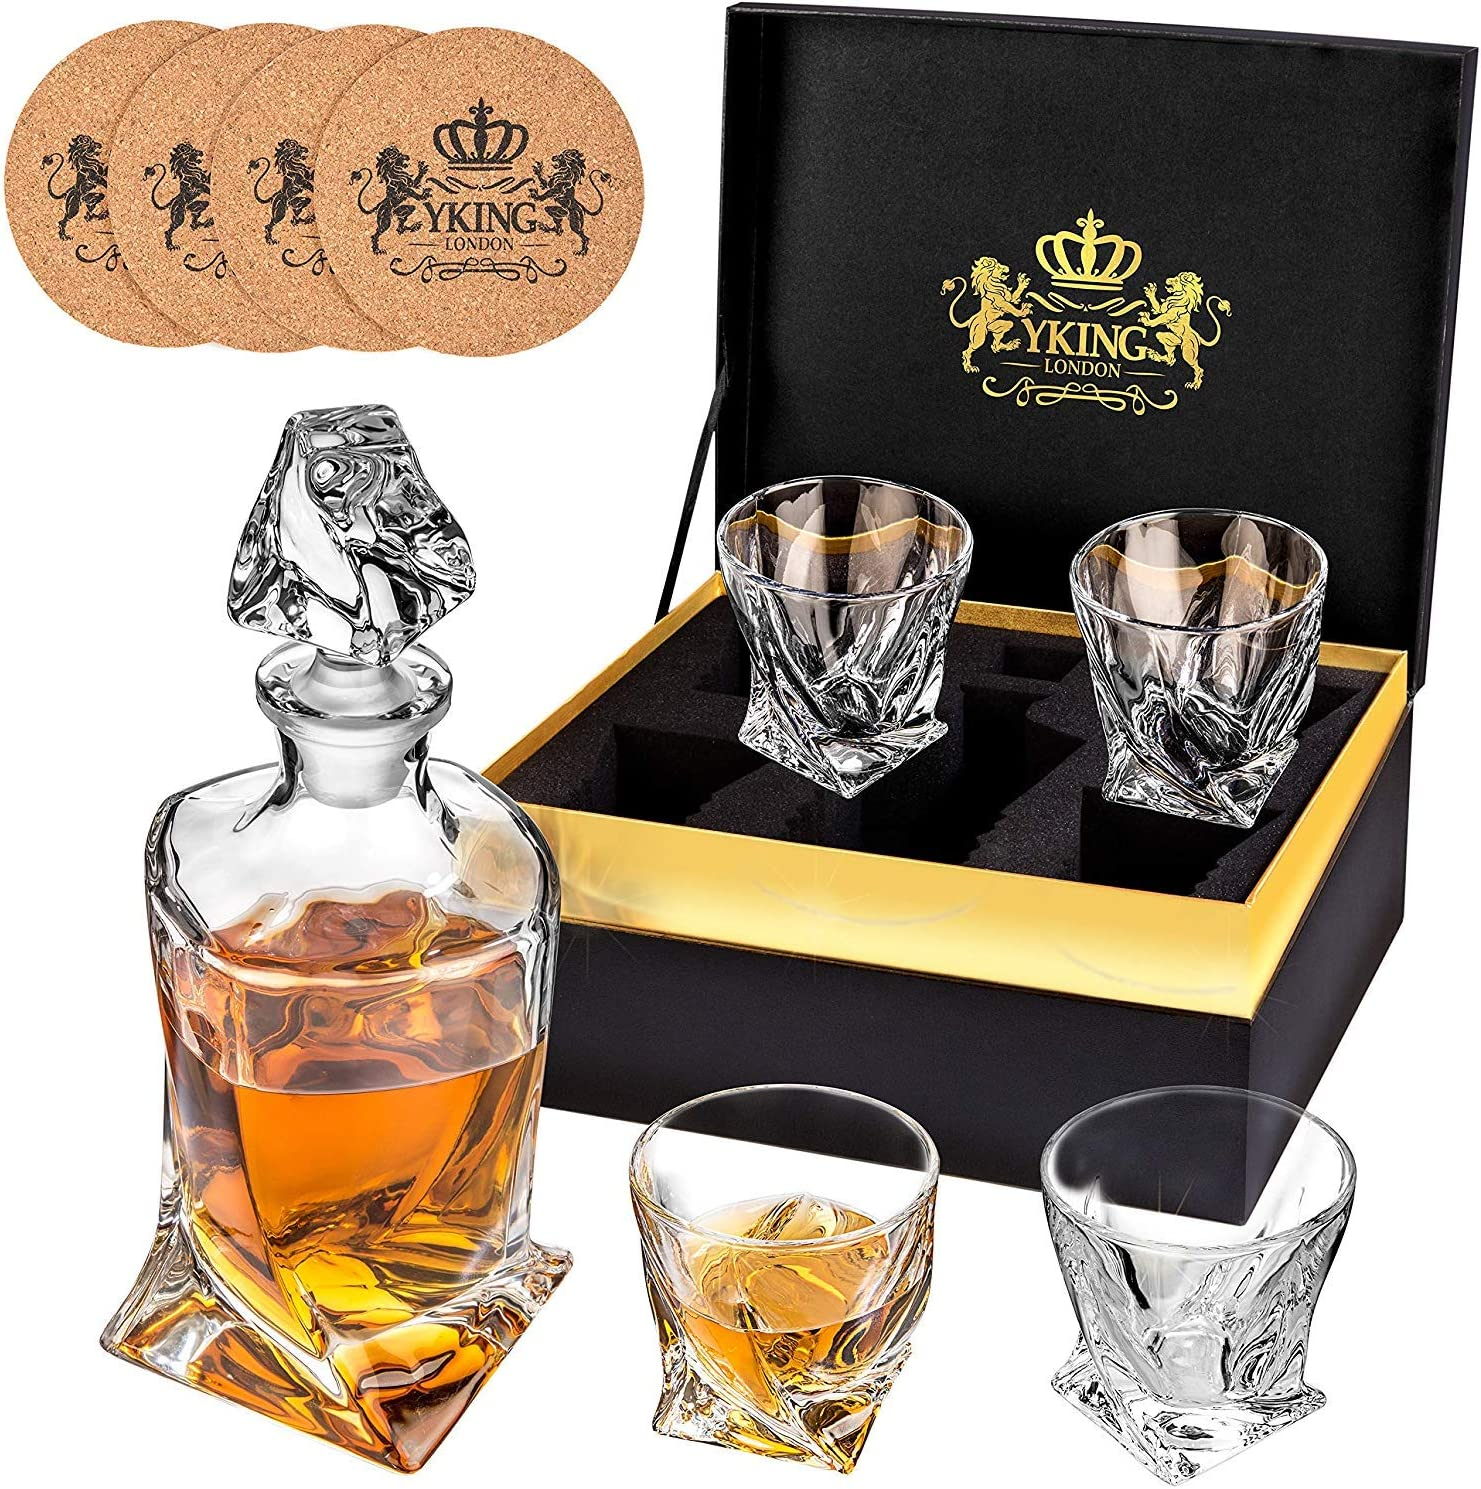 Whiskey Decanter and Glass Set Decanter set Whiskey Bourbon Scotch Tequila Rum Vodka Decanter Set decanter set Decanter Set 9 Piece in Premium Gift Box from YKing London